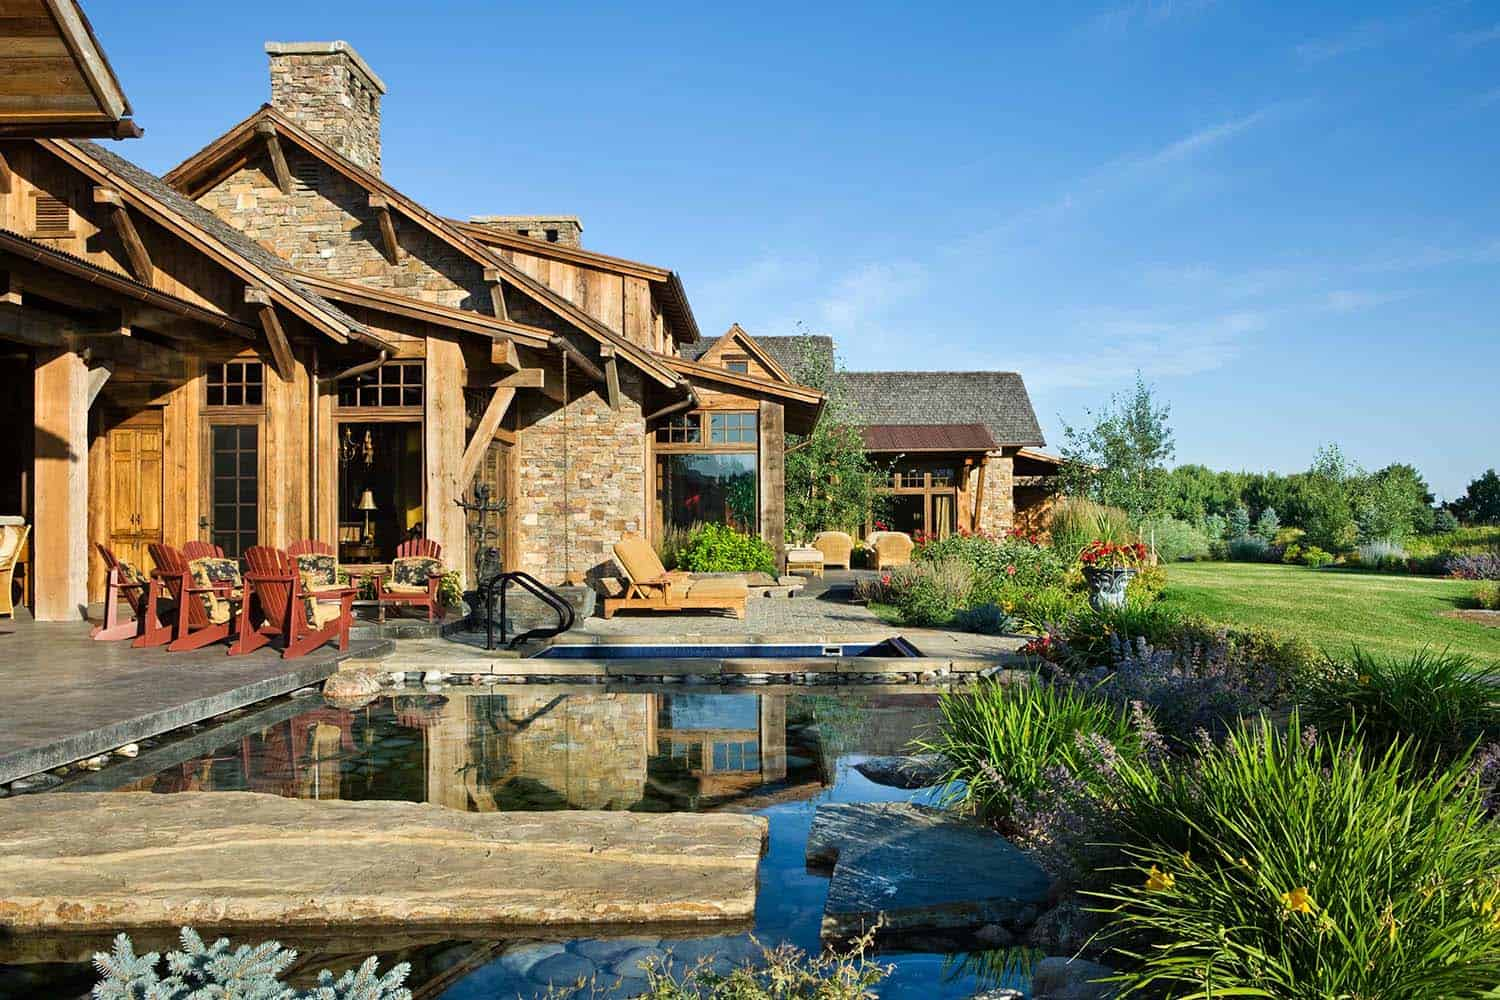 30 Built It Yourself Log Cabin Plans I Absolutely Like: A Rustic Family Compound In The Mountains Of Montana